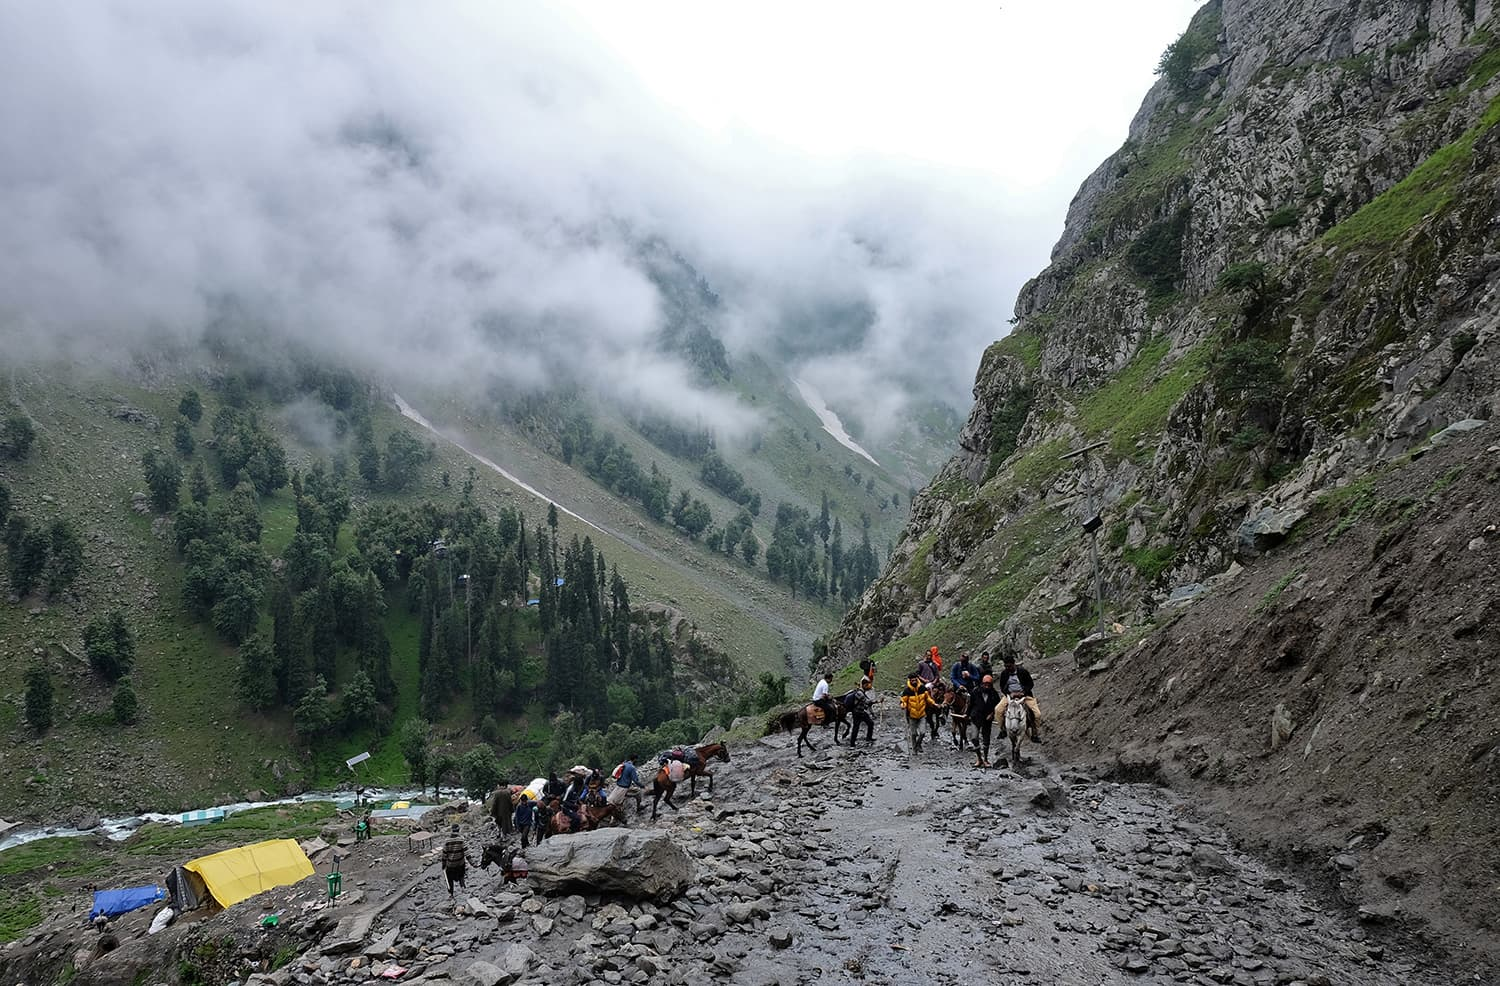 Hindu pilgrims trek through mountains to reach the holy Amarnath cave shrine, where they worship an ice stalagmite that Hindus believe to be the symbol of Lord Shiva, near Pahalgam  in Indian-occupied Kashmir on July 27. — Reuters